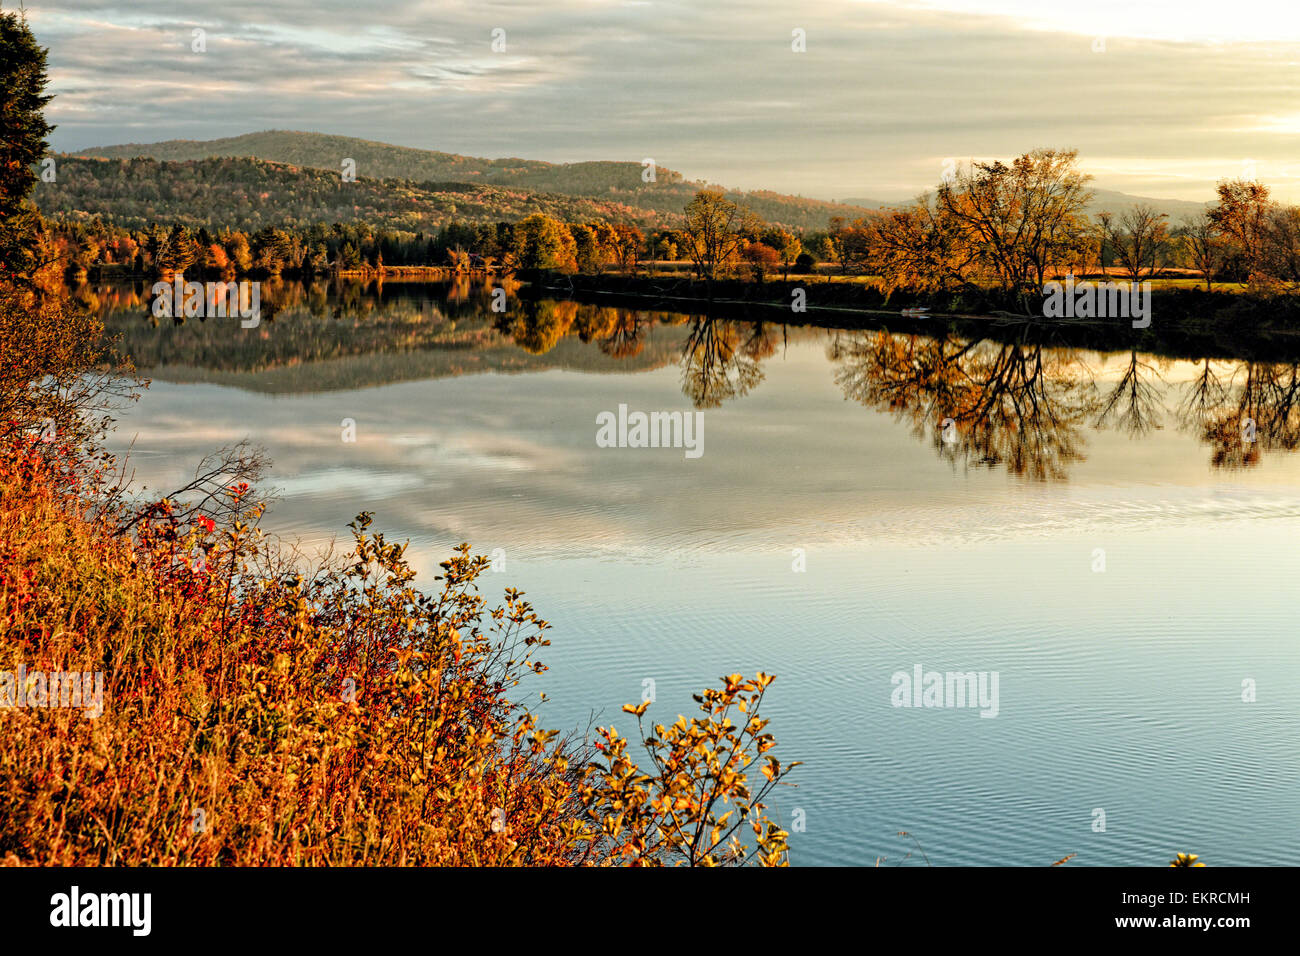 View of a Tranquil River with Colorful Foliage Reflections, Moore Reservoir, Connecticut River, New Hampshire - Stock Image